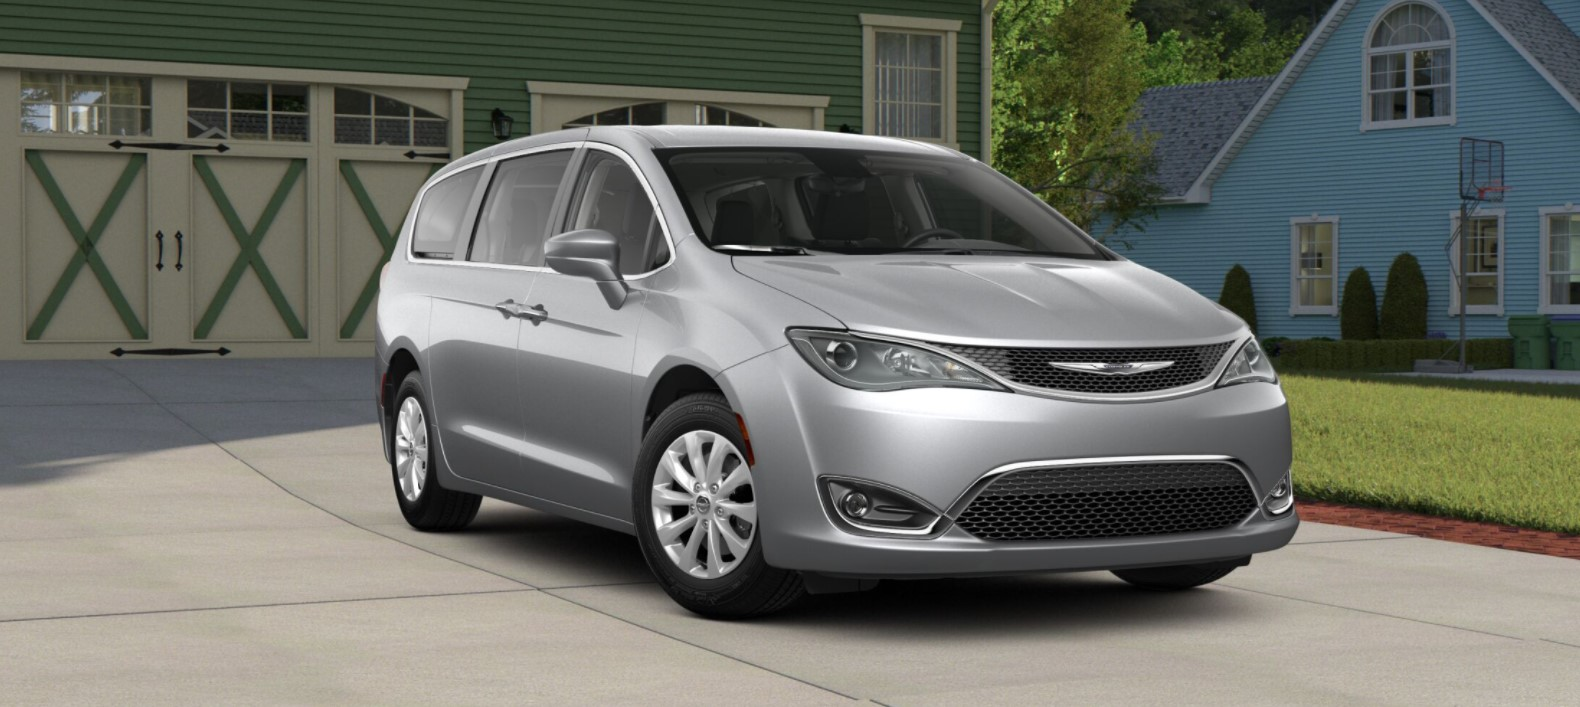 2018 Chrysler Pacifica Touring Plus Front Silver Exterior